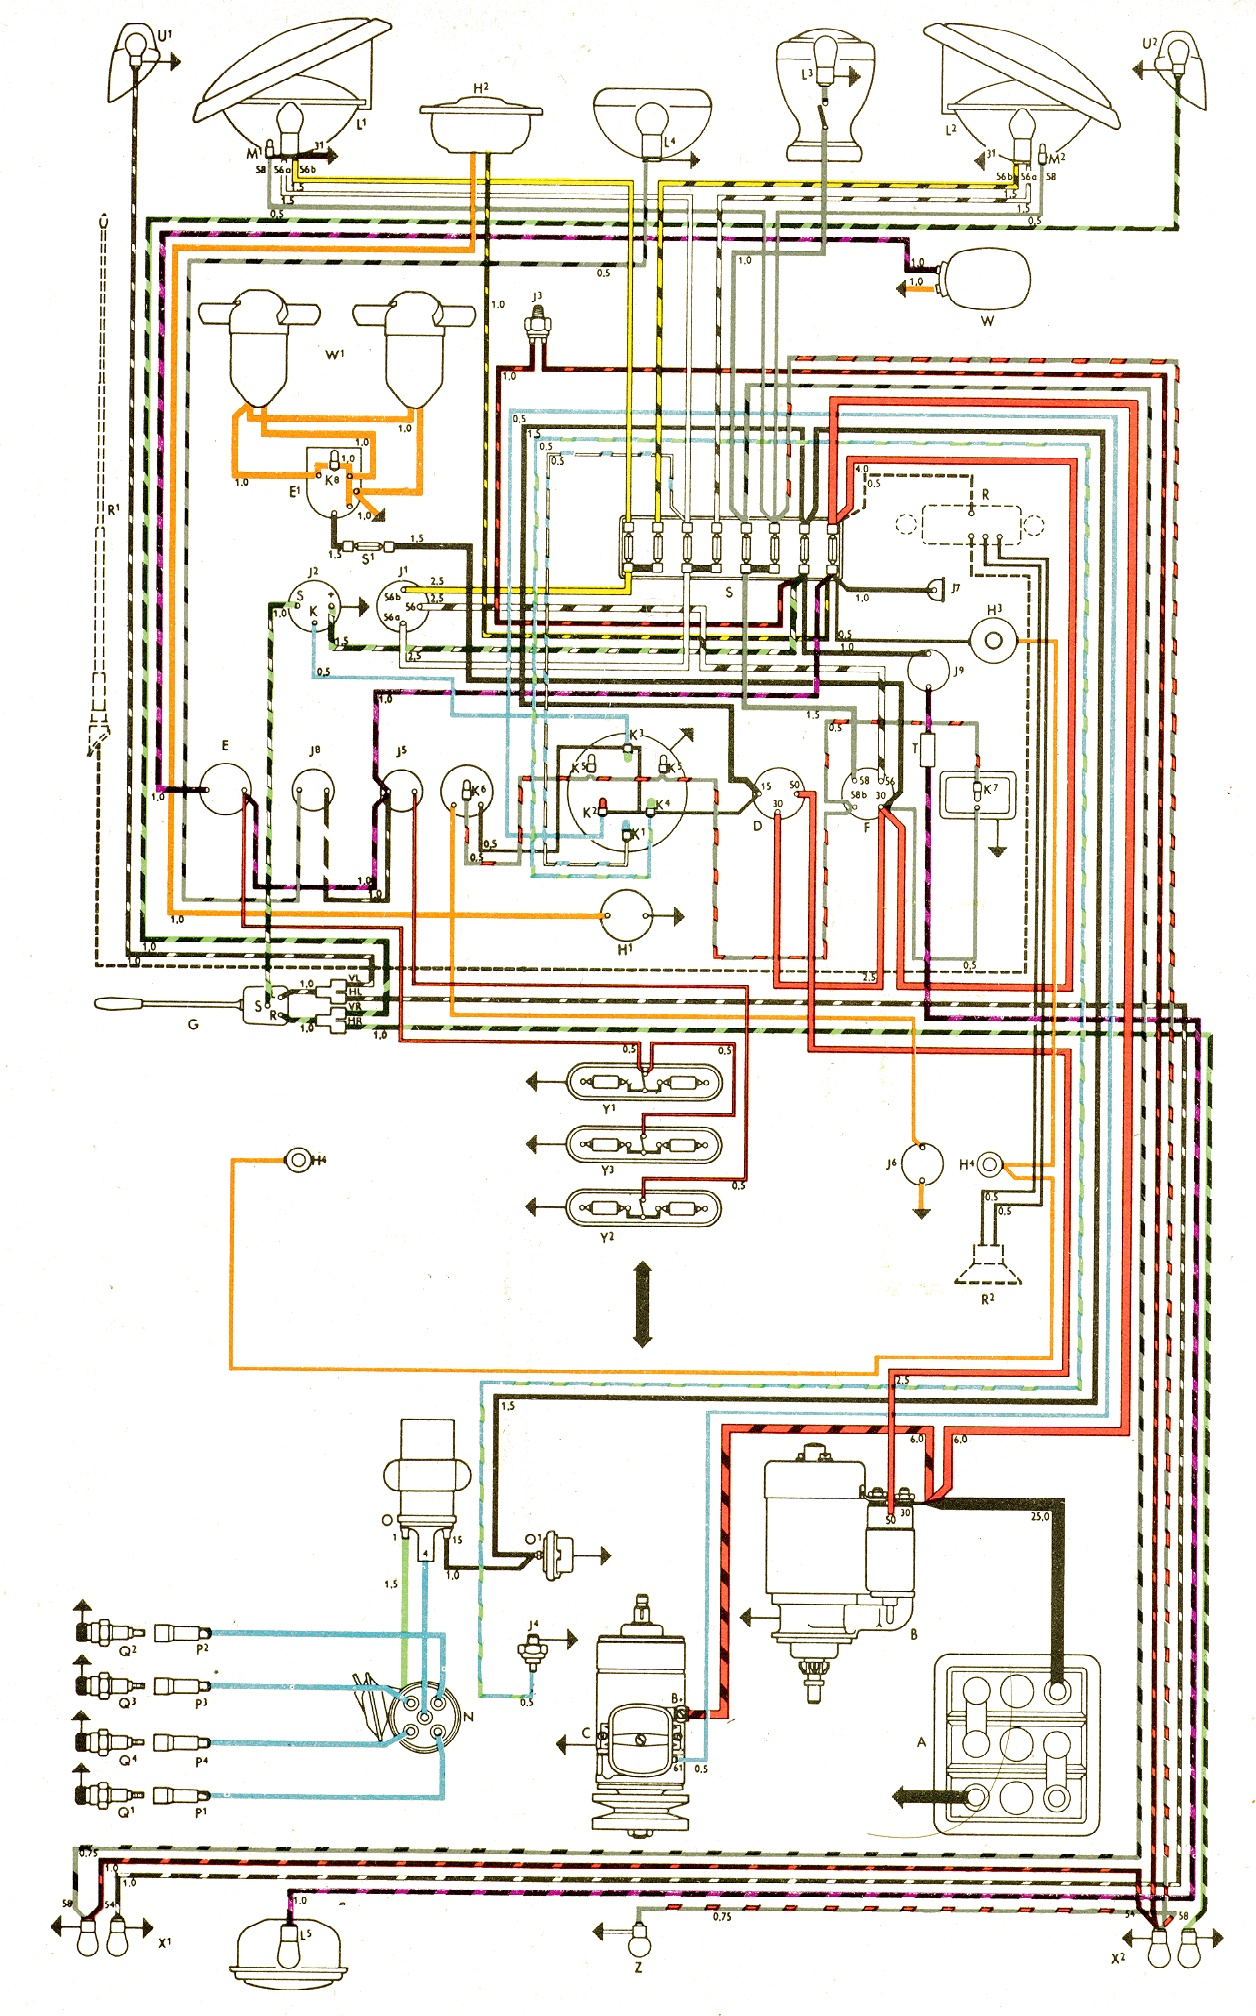 vw 1600 engine diagram bones vertebrae labeled wiring diagrams